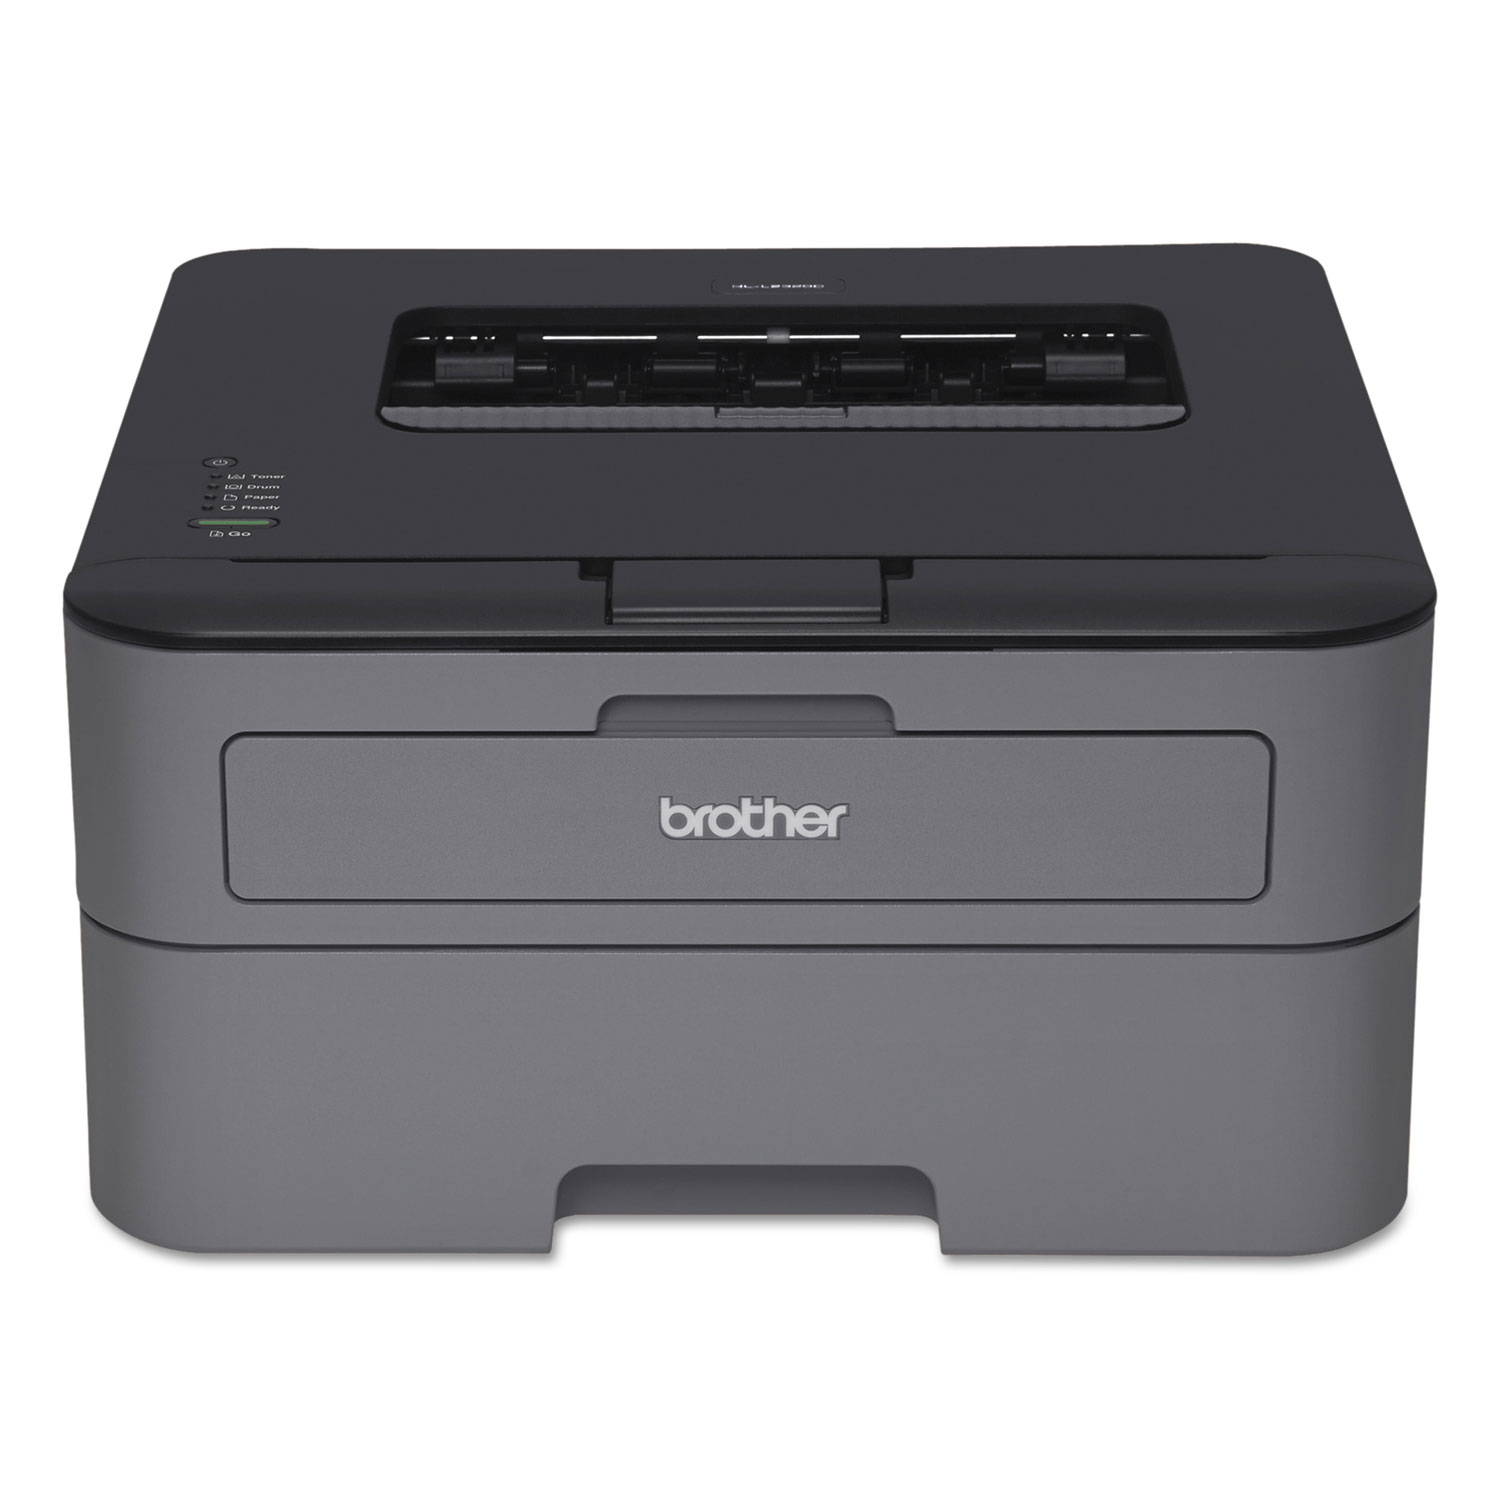 HL-L2300d Compact Laser Printer With Duplex Printing